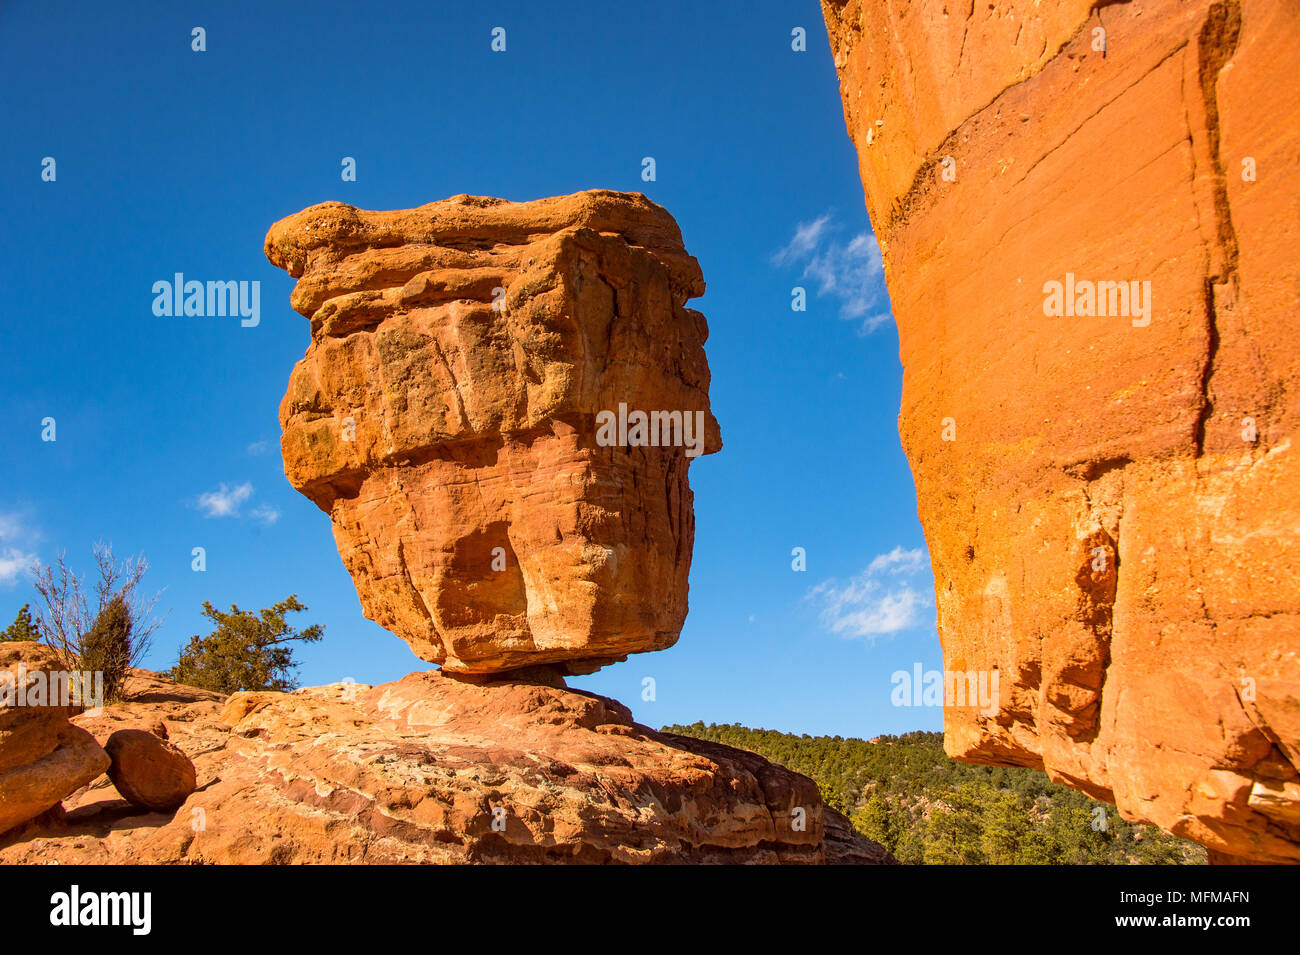 Balanced Rock At The Garden Of The Gods In Colorado Springs